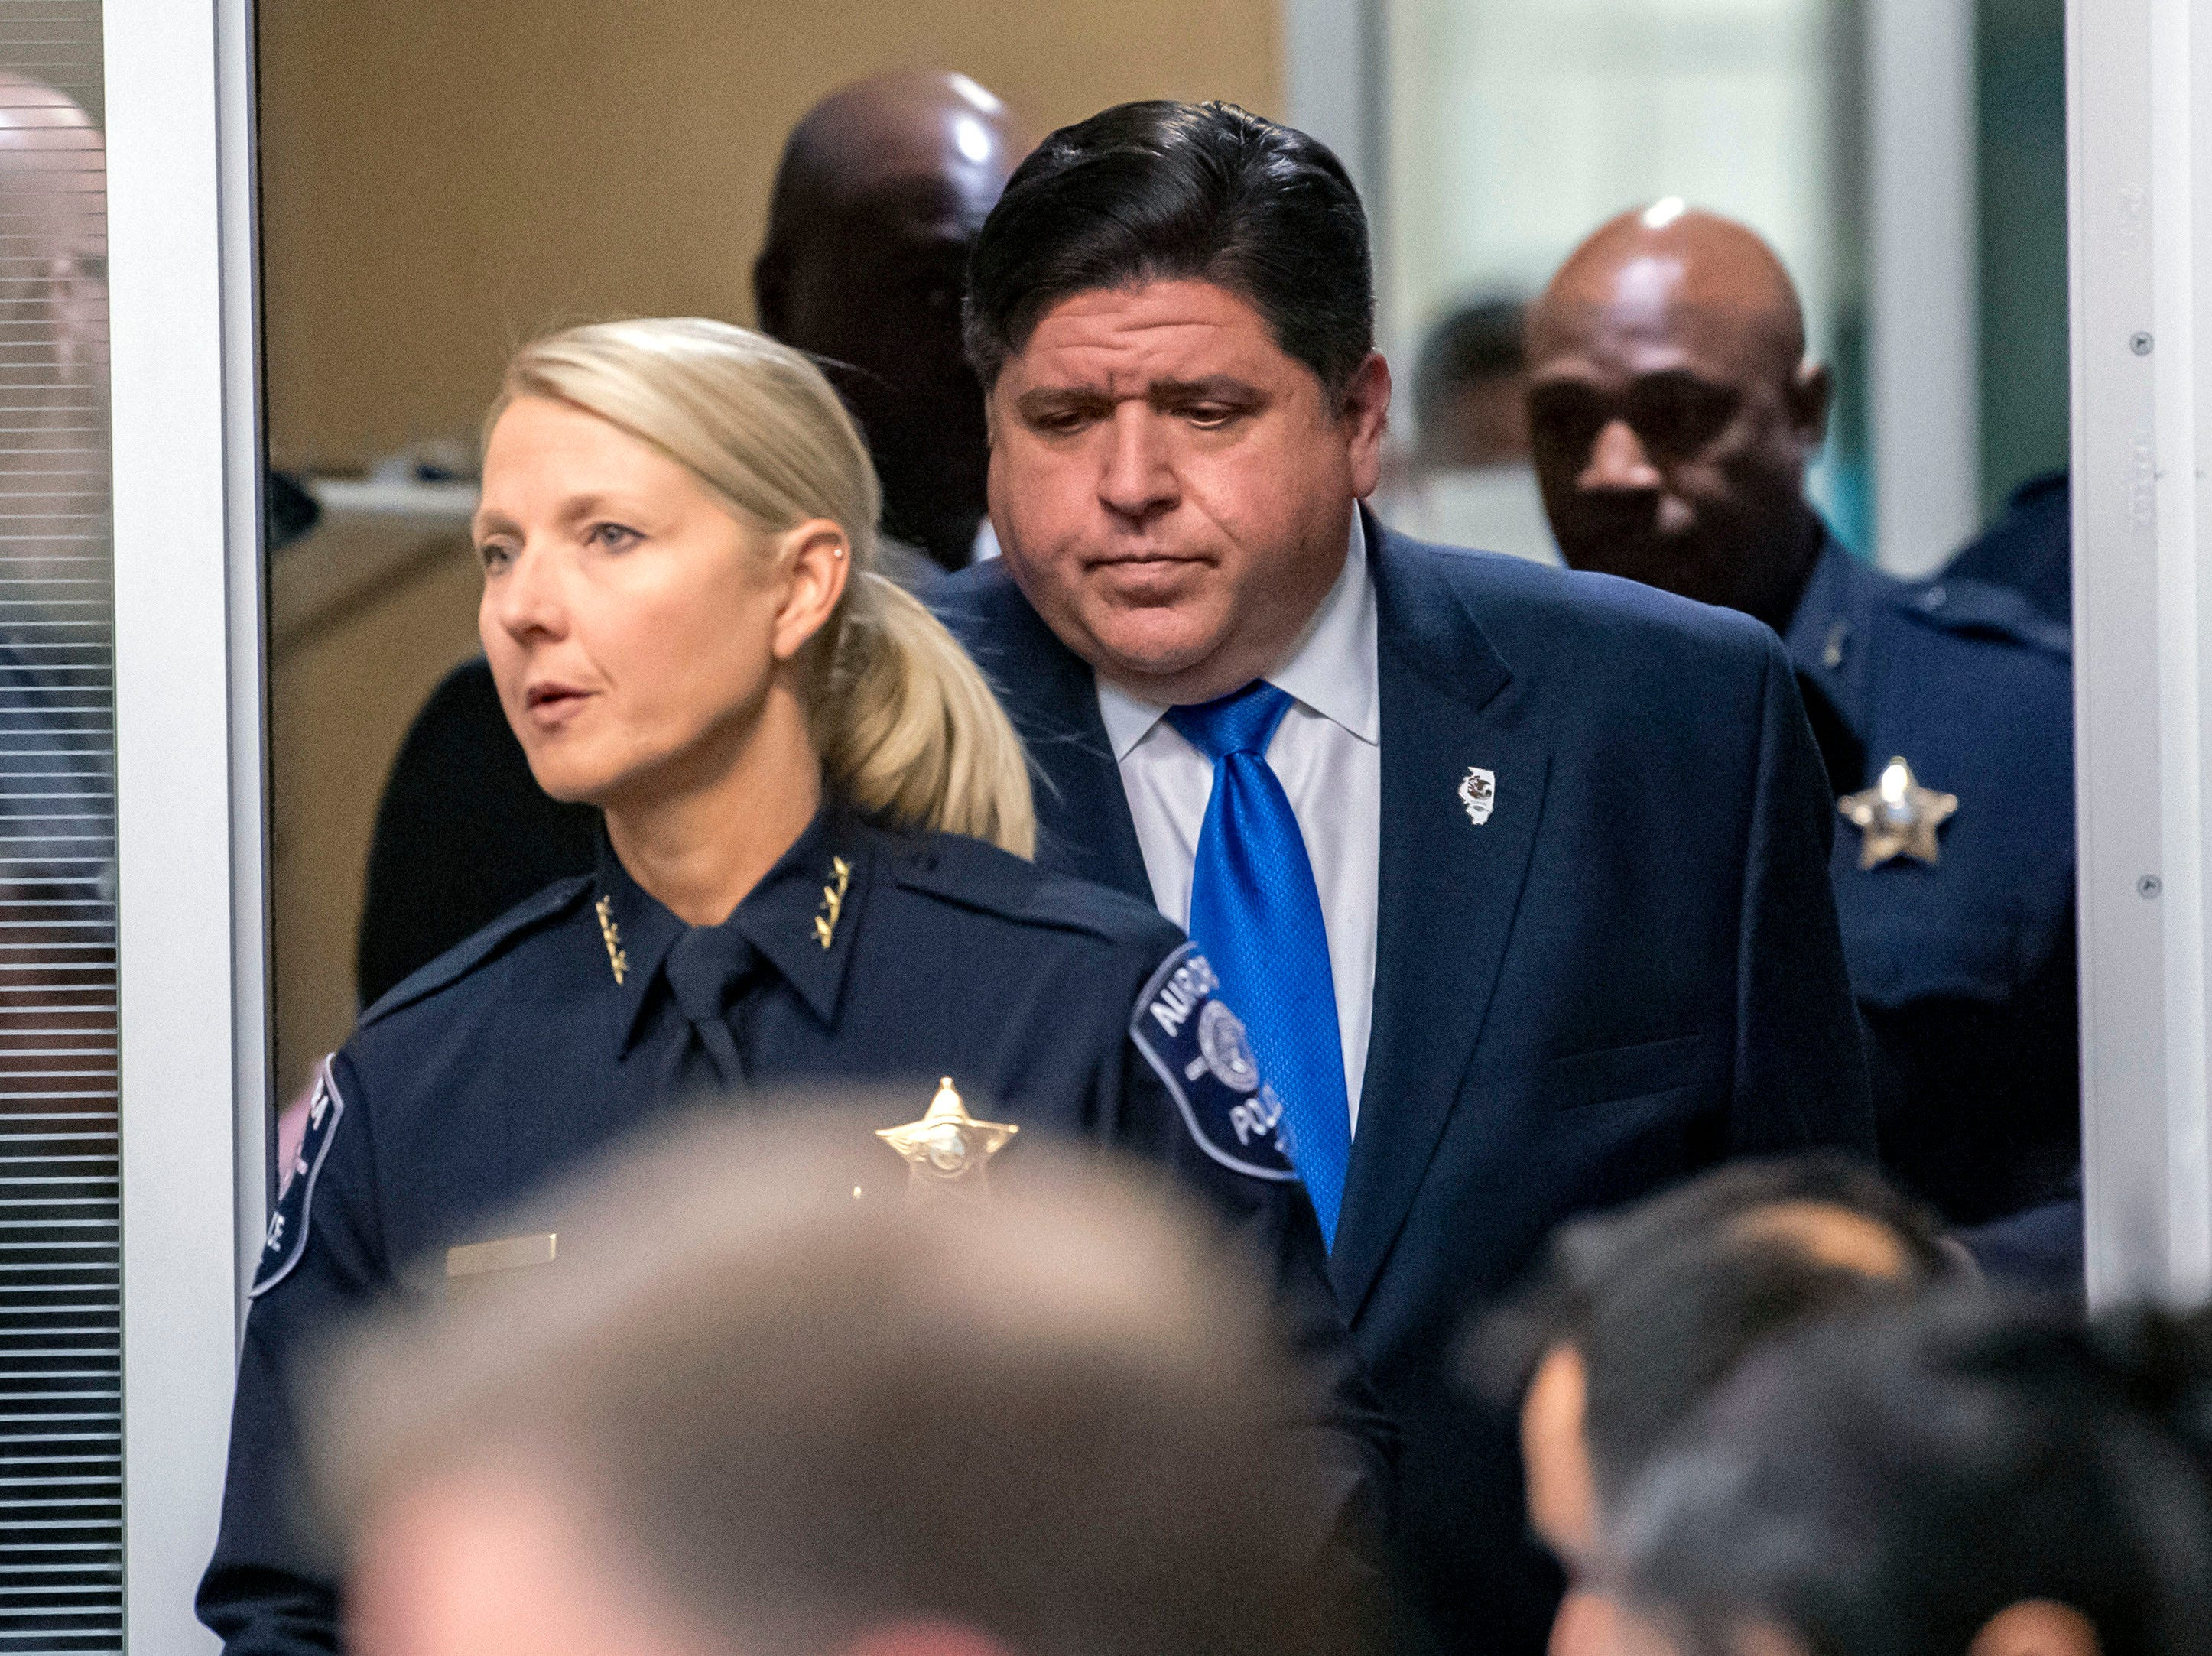 Aurora Police Chief Kristen Ziman escorts Illinois Governor J. B. Pritzker into a press conference at the Aurora Police Headquarters, after an active shooter was neutralized at the Henry Pratt Company.